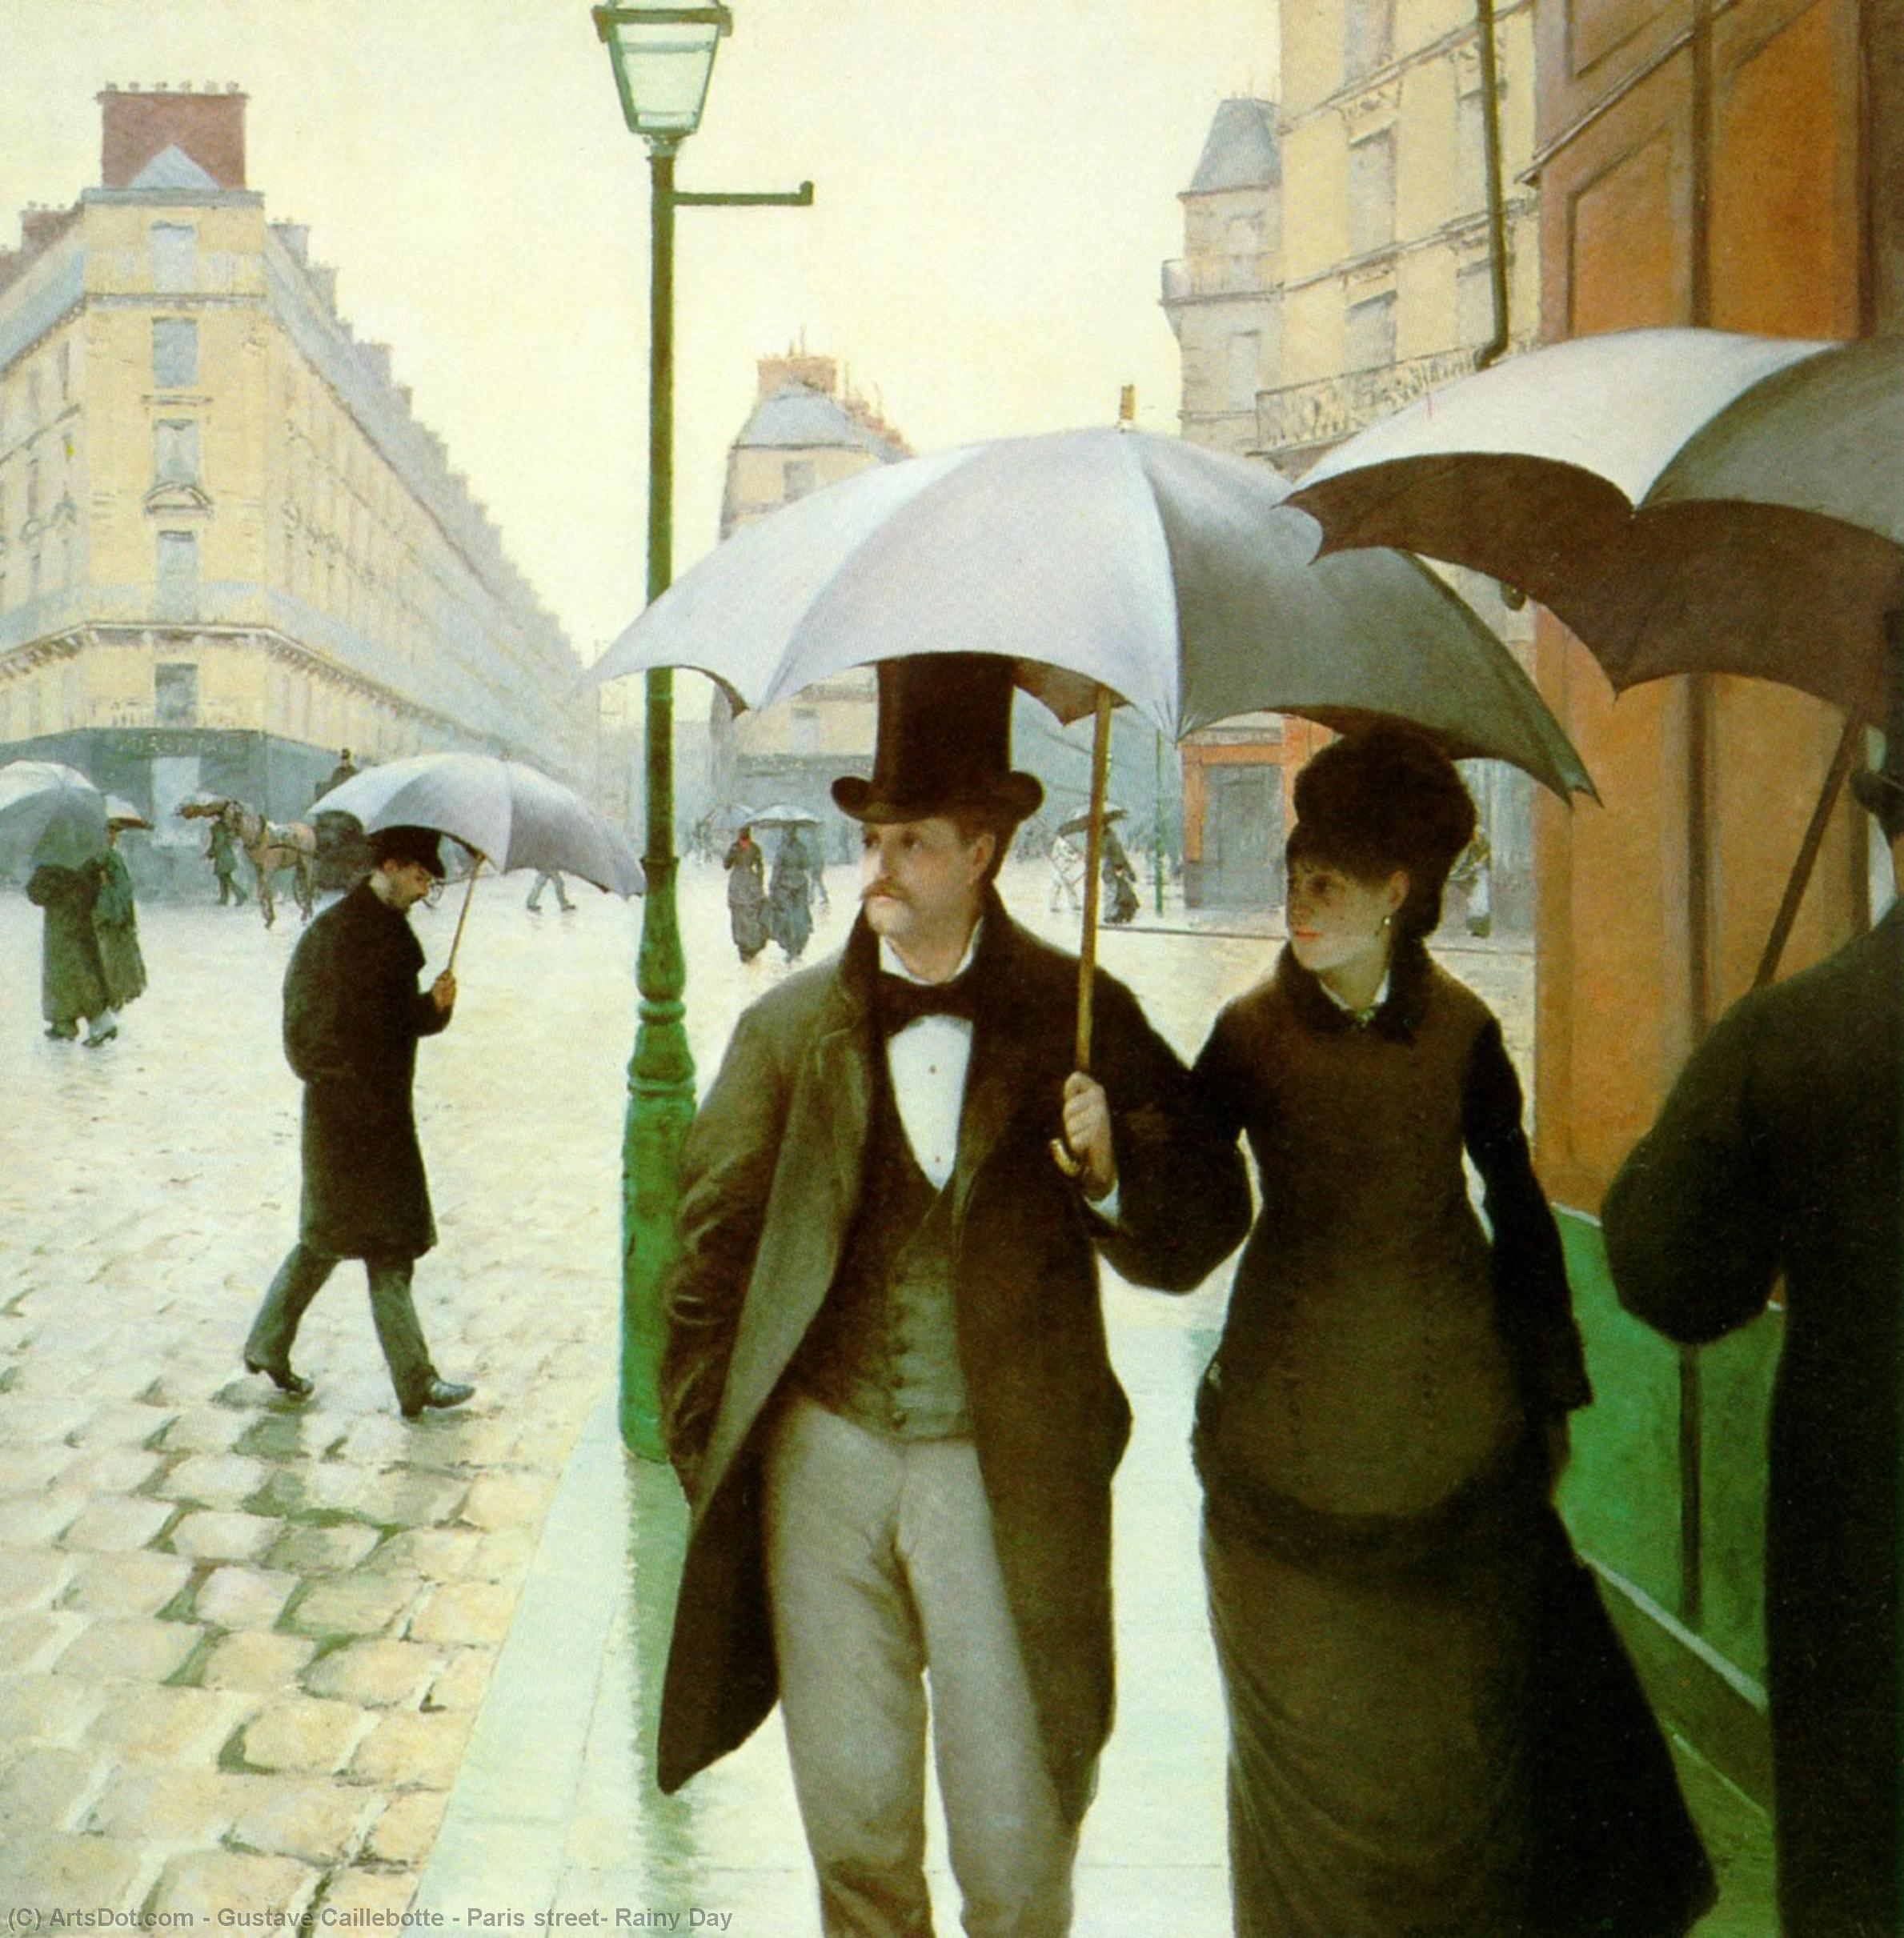 Wikioo.org - The Encyclopedia of Fine Arts - Painting, Artwork by Gustave Caillebotte - Paris street, Rainy Day